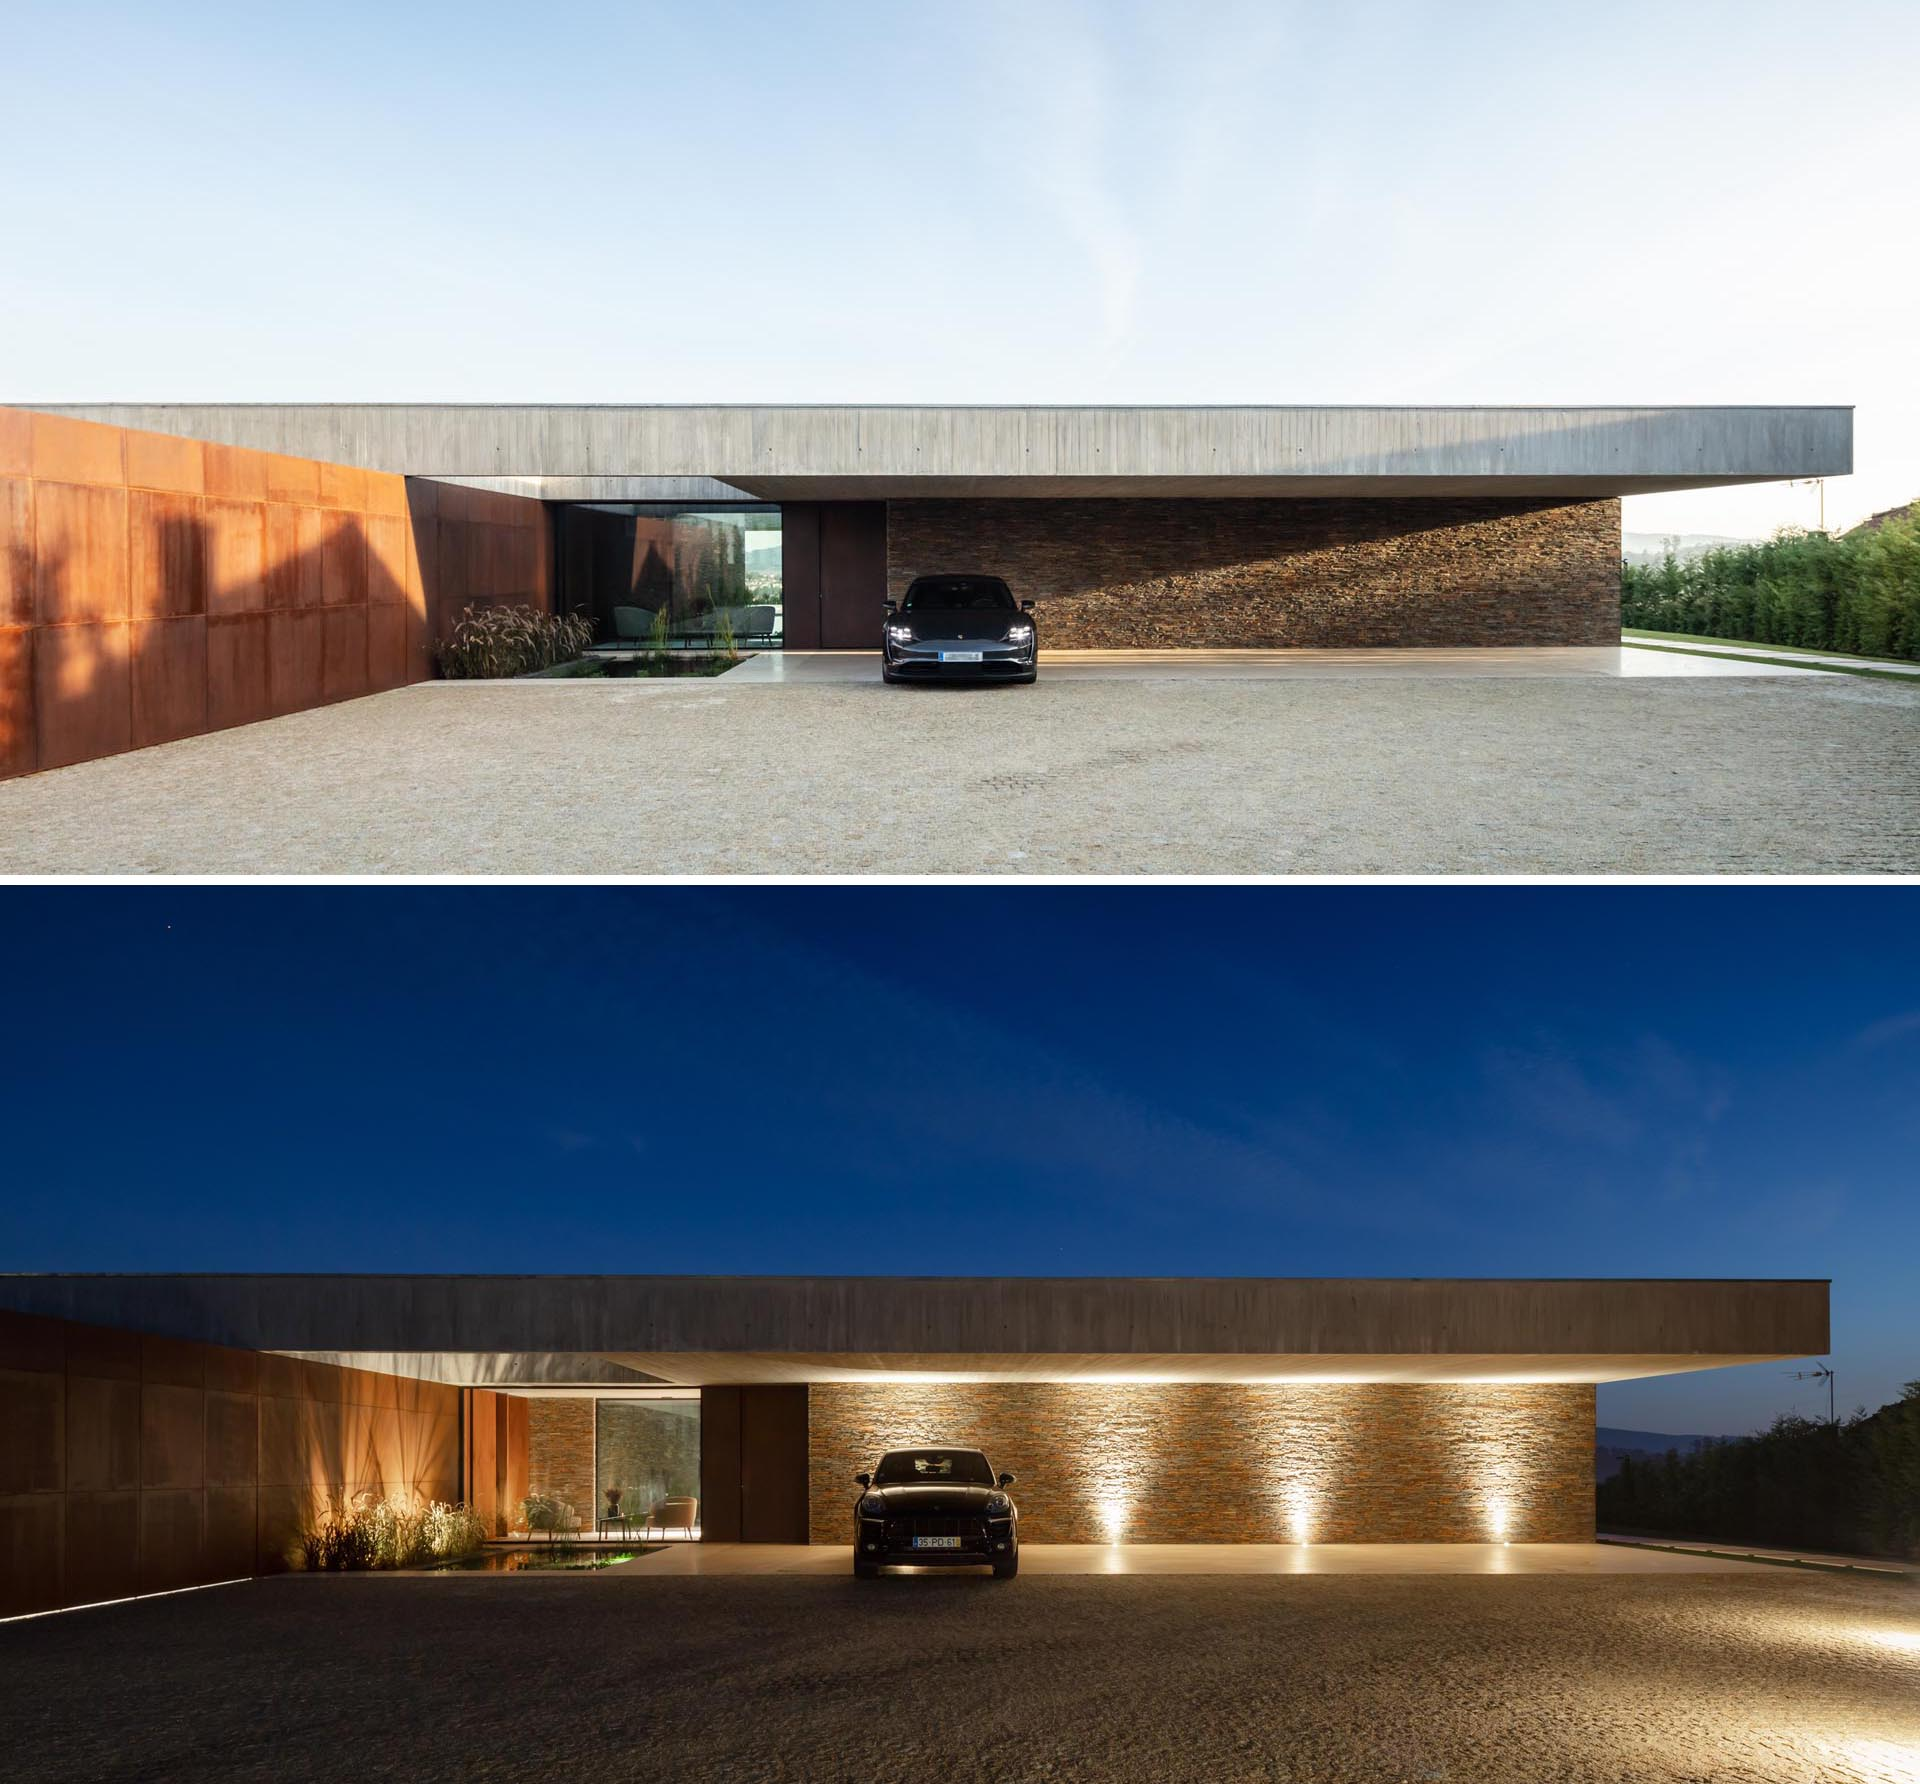 A modern concrete hone with weathered steel and stone accent walls, and lighting that highlights the covered parking area at night.